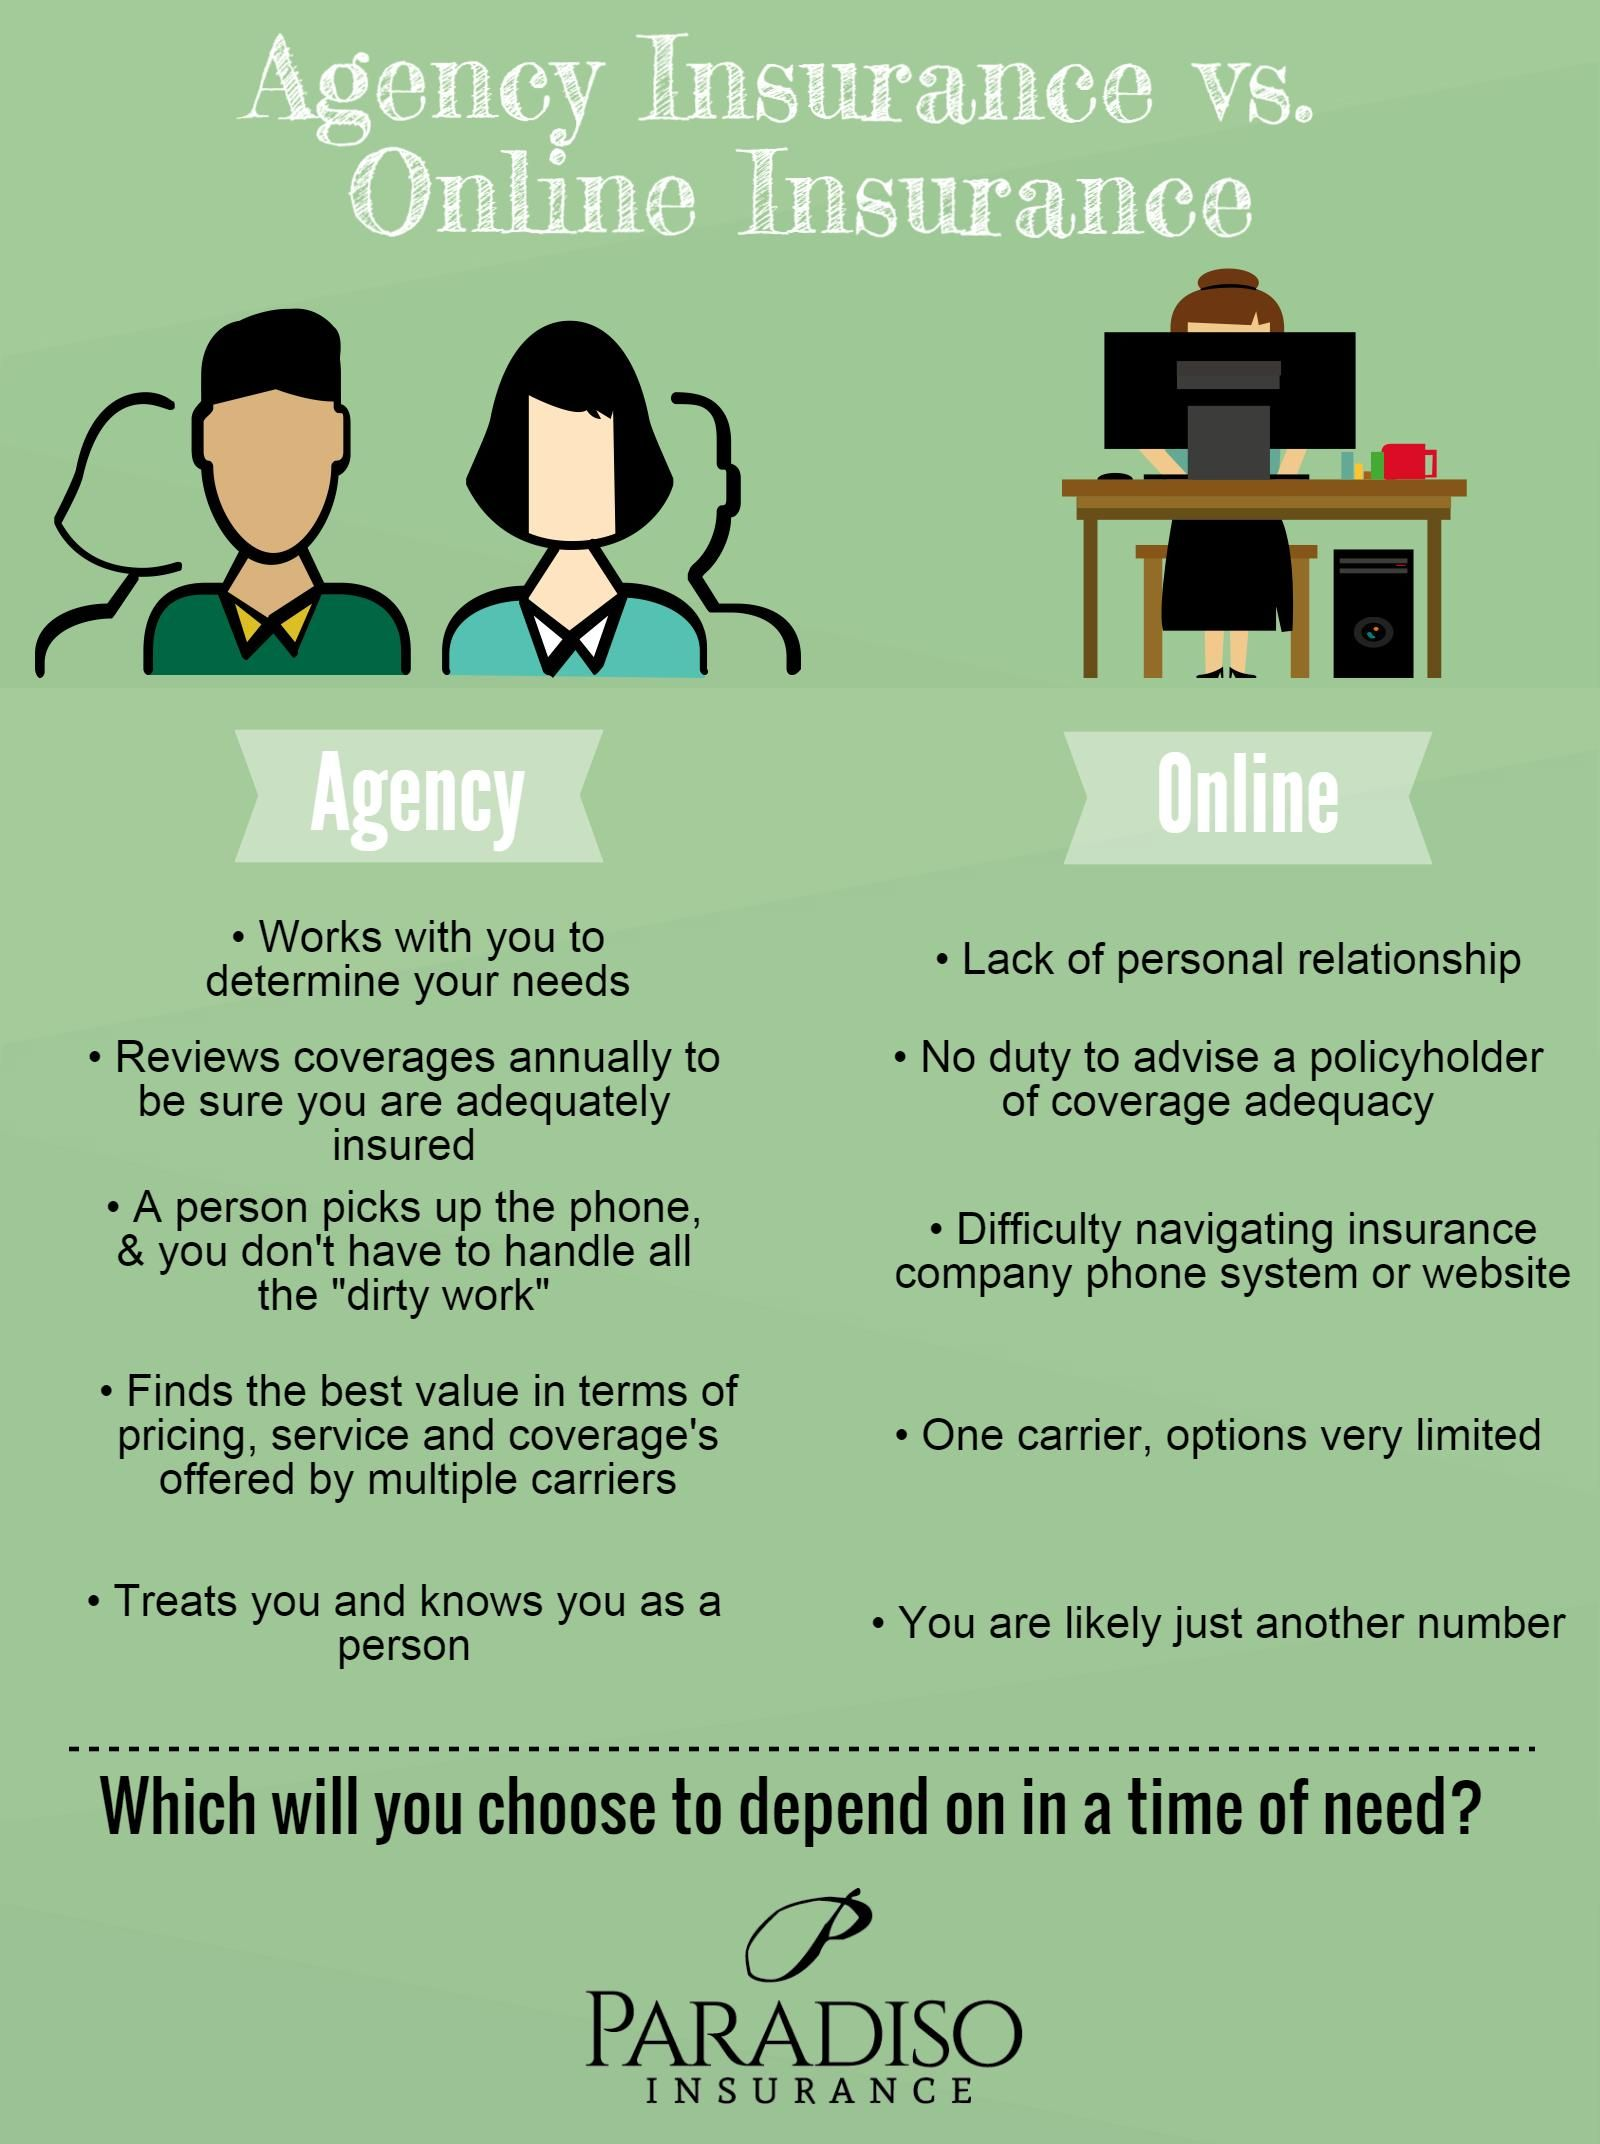 Which Would You Choose Agencyinsurance Onlineinsurance